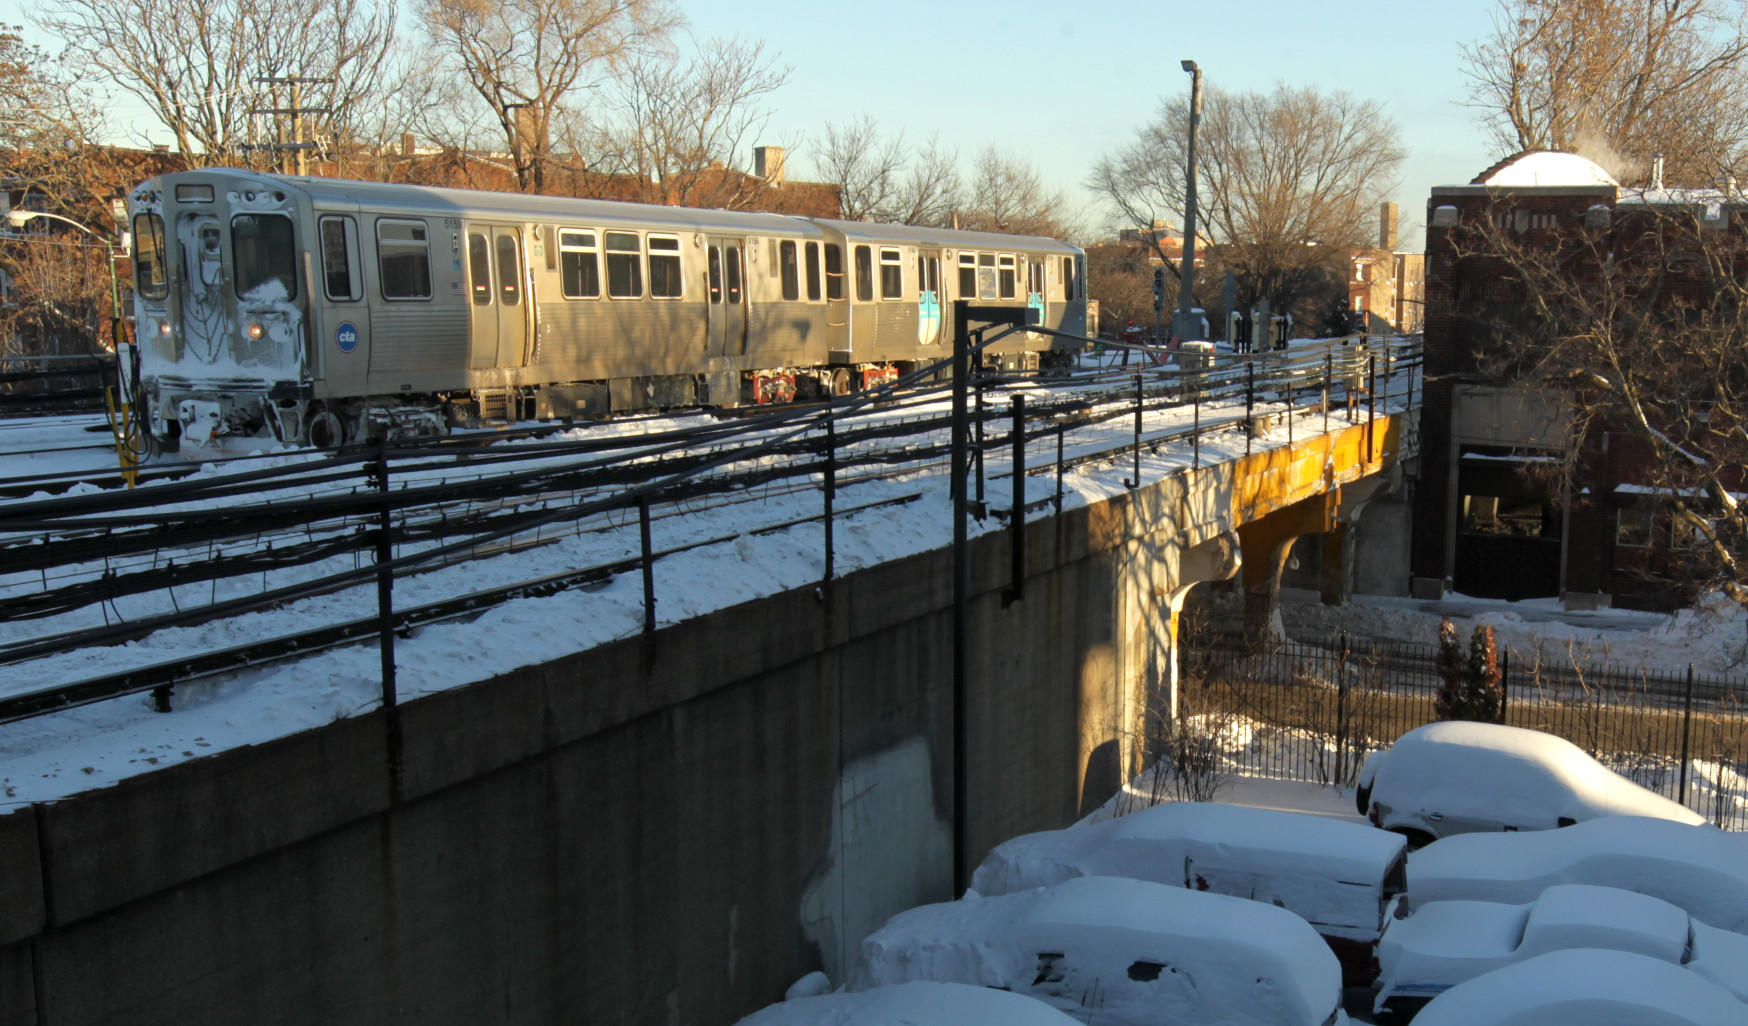 """A CTA Yellow Line train sits idle after a """"minor derailment"""" in Rogers Park, according to the CTA."""